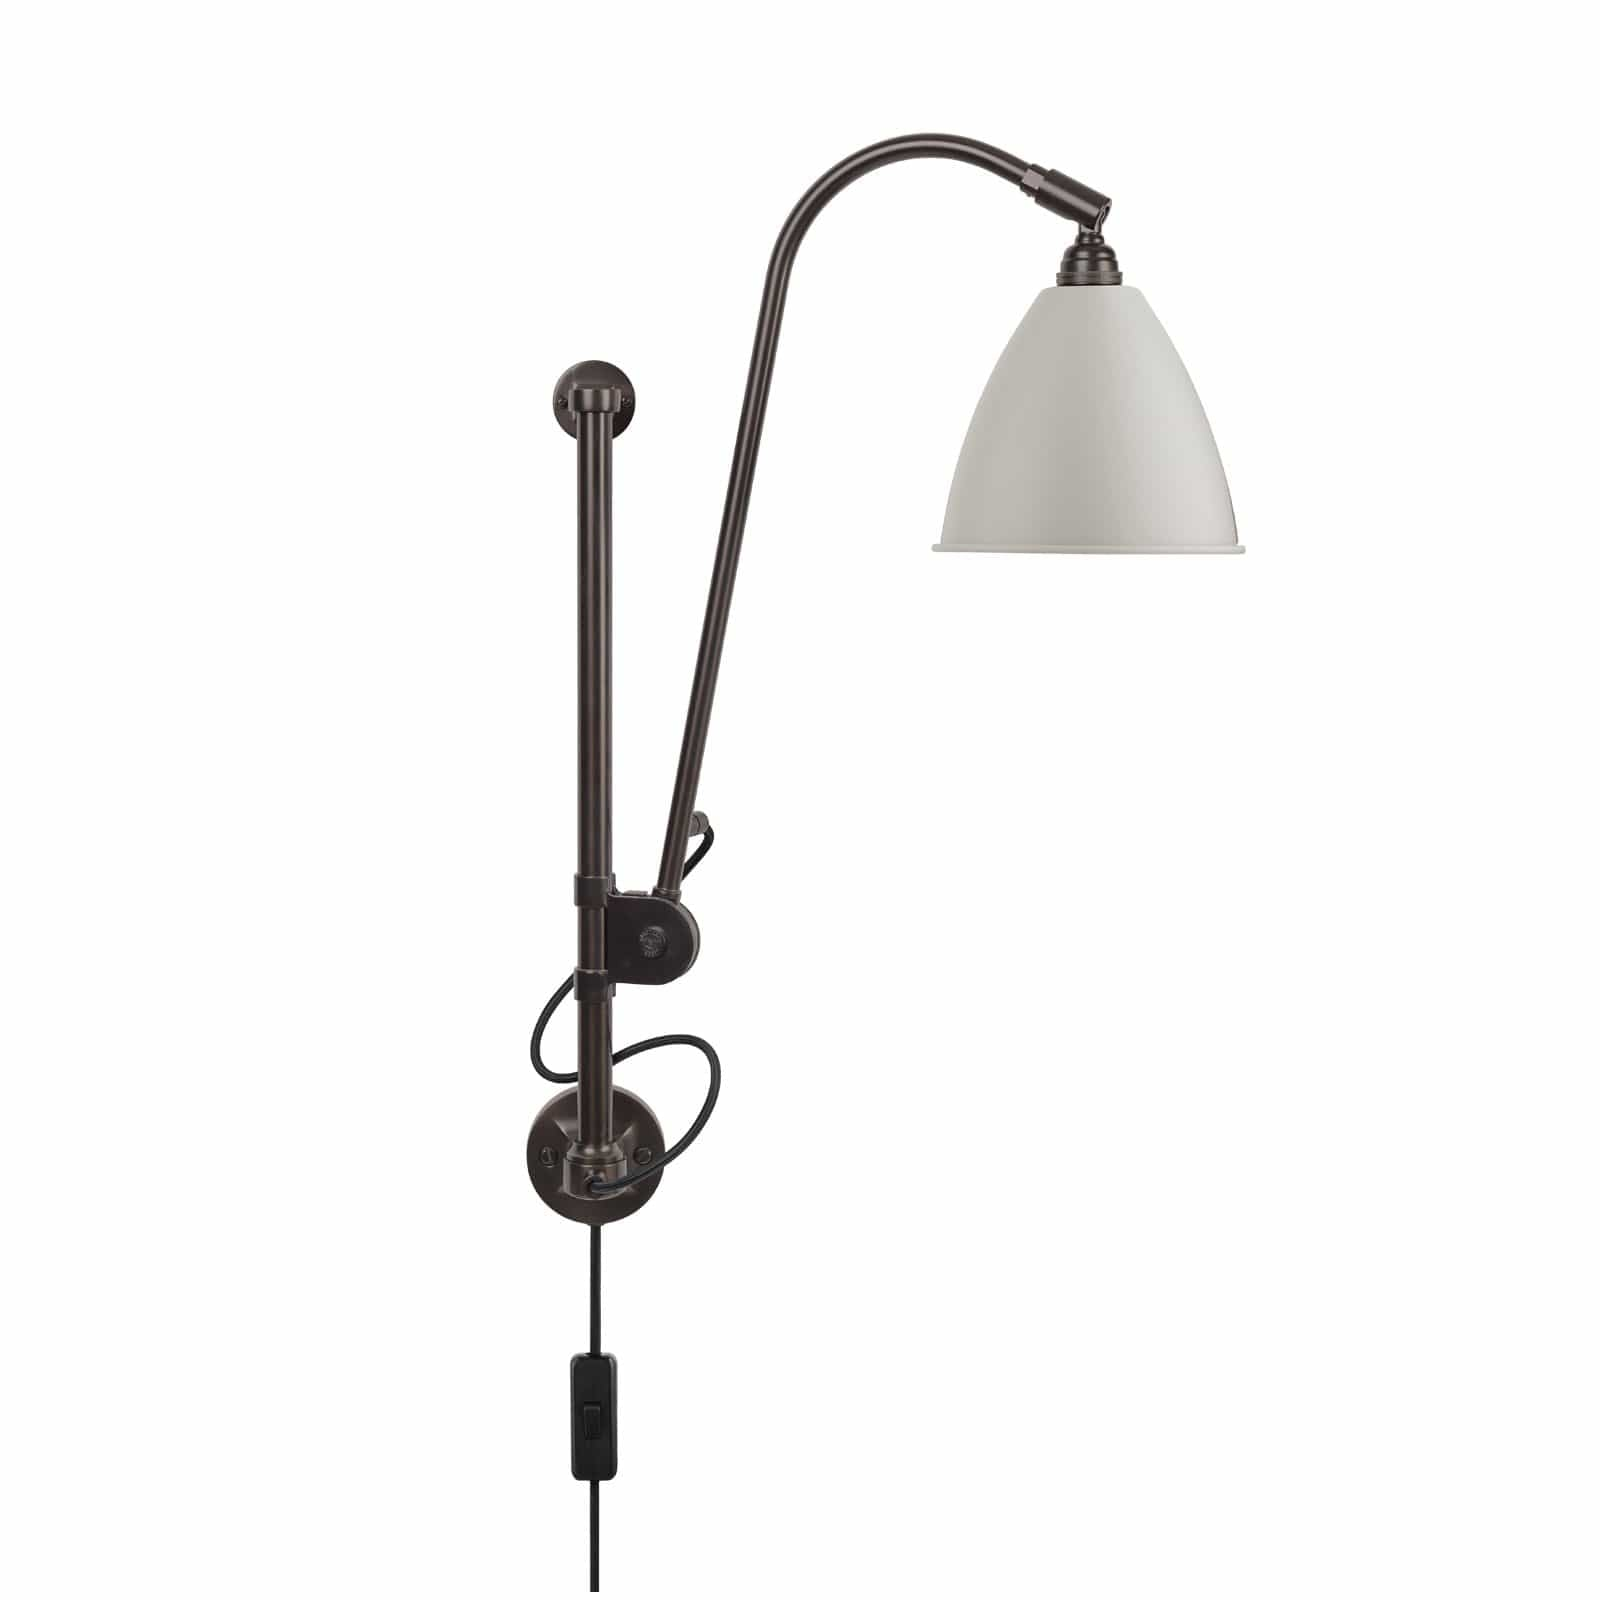 Gubi Lighting Black Brass / Classic White Semi Matte BL5 Wall Lamp